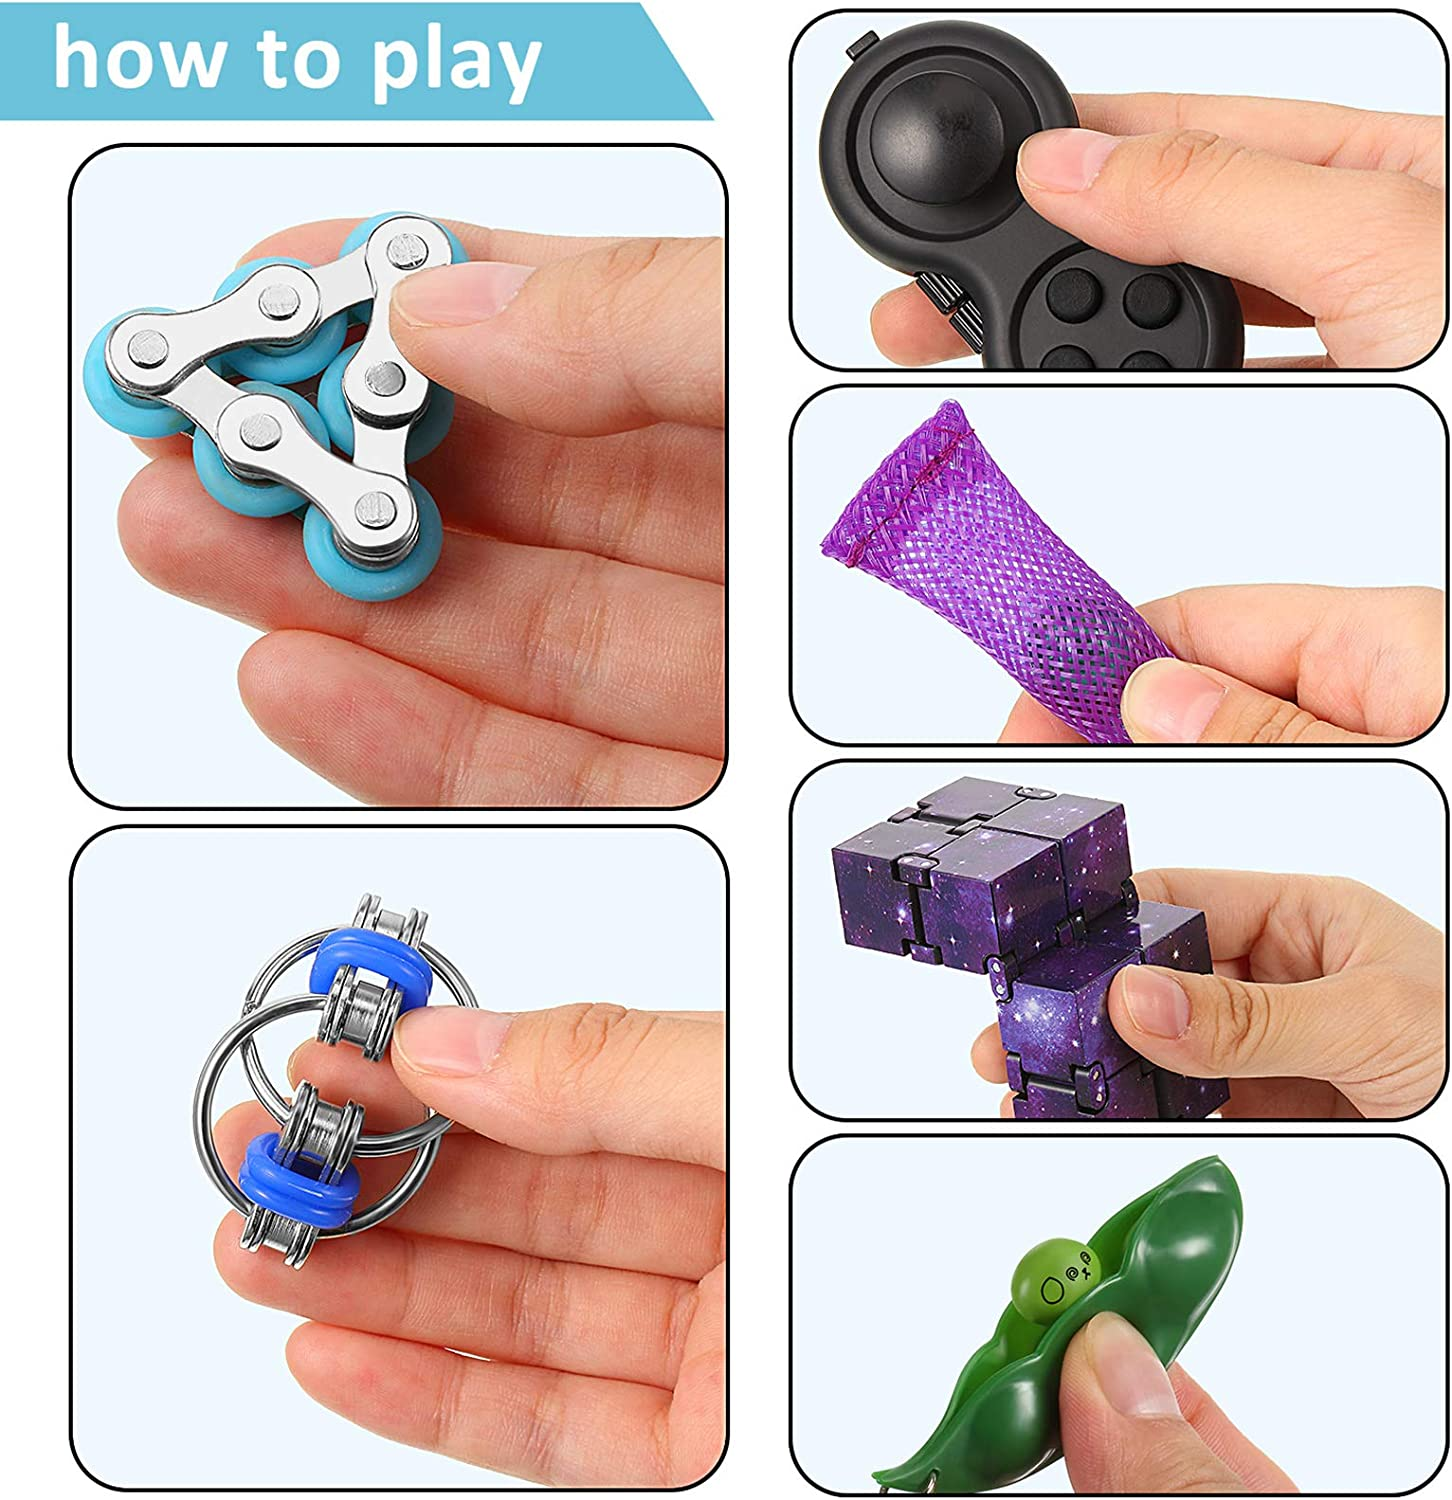 7 Pieces Fidget Toy Set Include Six Roller Chain Fidget Key Flippy Chain Infinity Cube Wacky Track Fidget Pad Fidget Bean and Marble Fidget with Storage Bag for Autism Stress Anxiety Relief